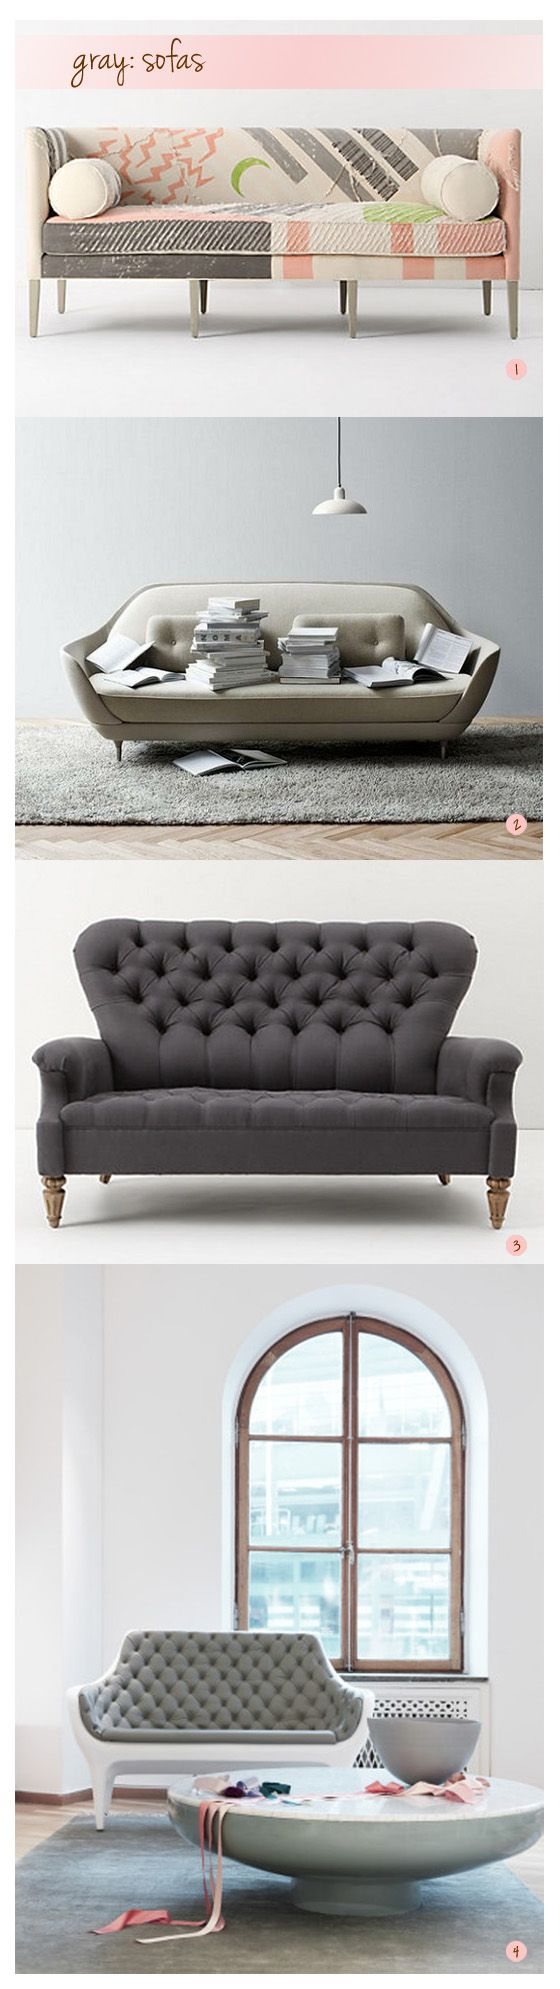 Over at the fun blog dirty Laundry there are some gorgeous in gray sofa's that are a must see…you can hop over there for all the details and...